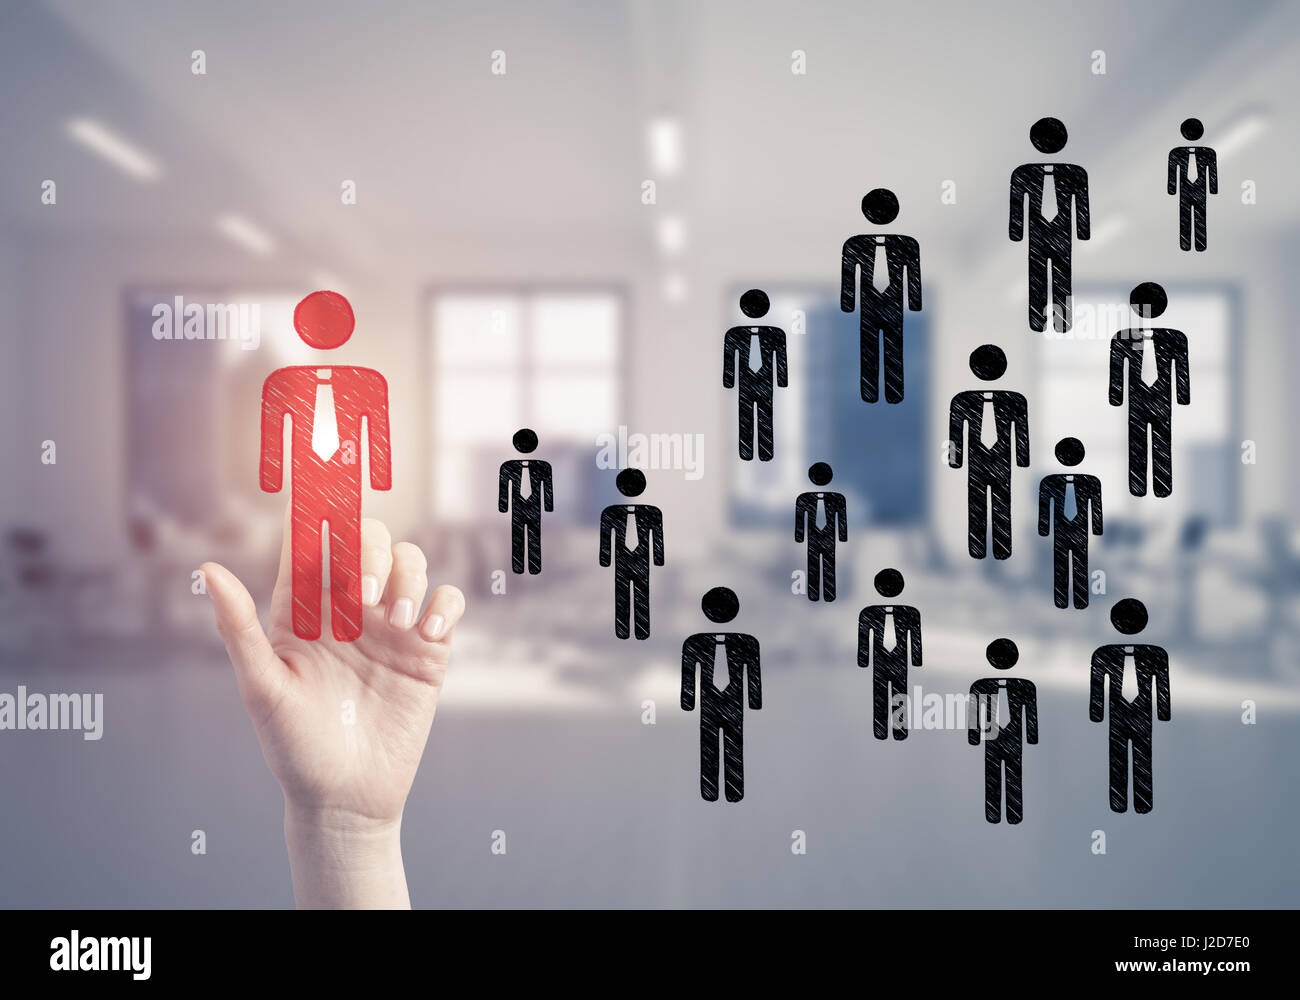 Concept of leadership and teamworking with many icons and one of - Stock Image